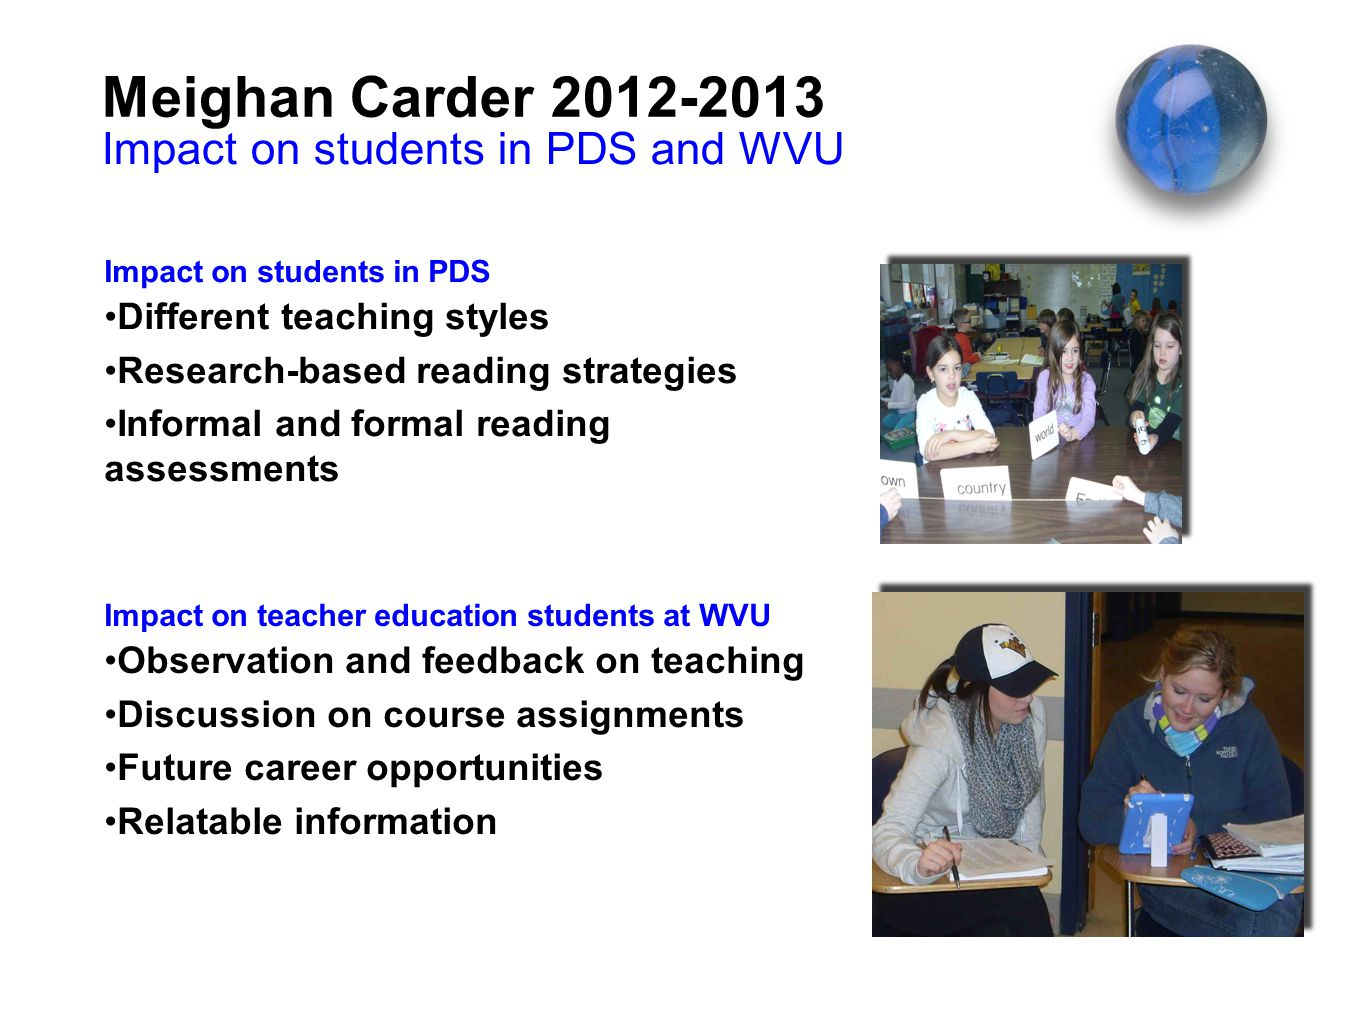 Meighan Carder 2012-2013 Impact on students in PDS and WVU